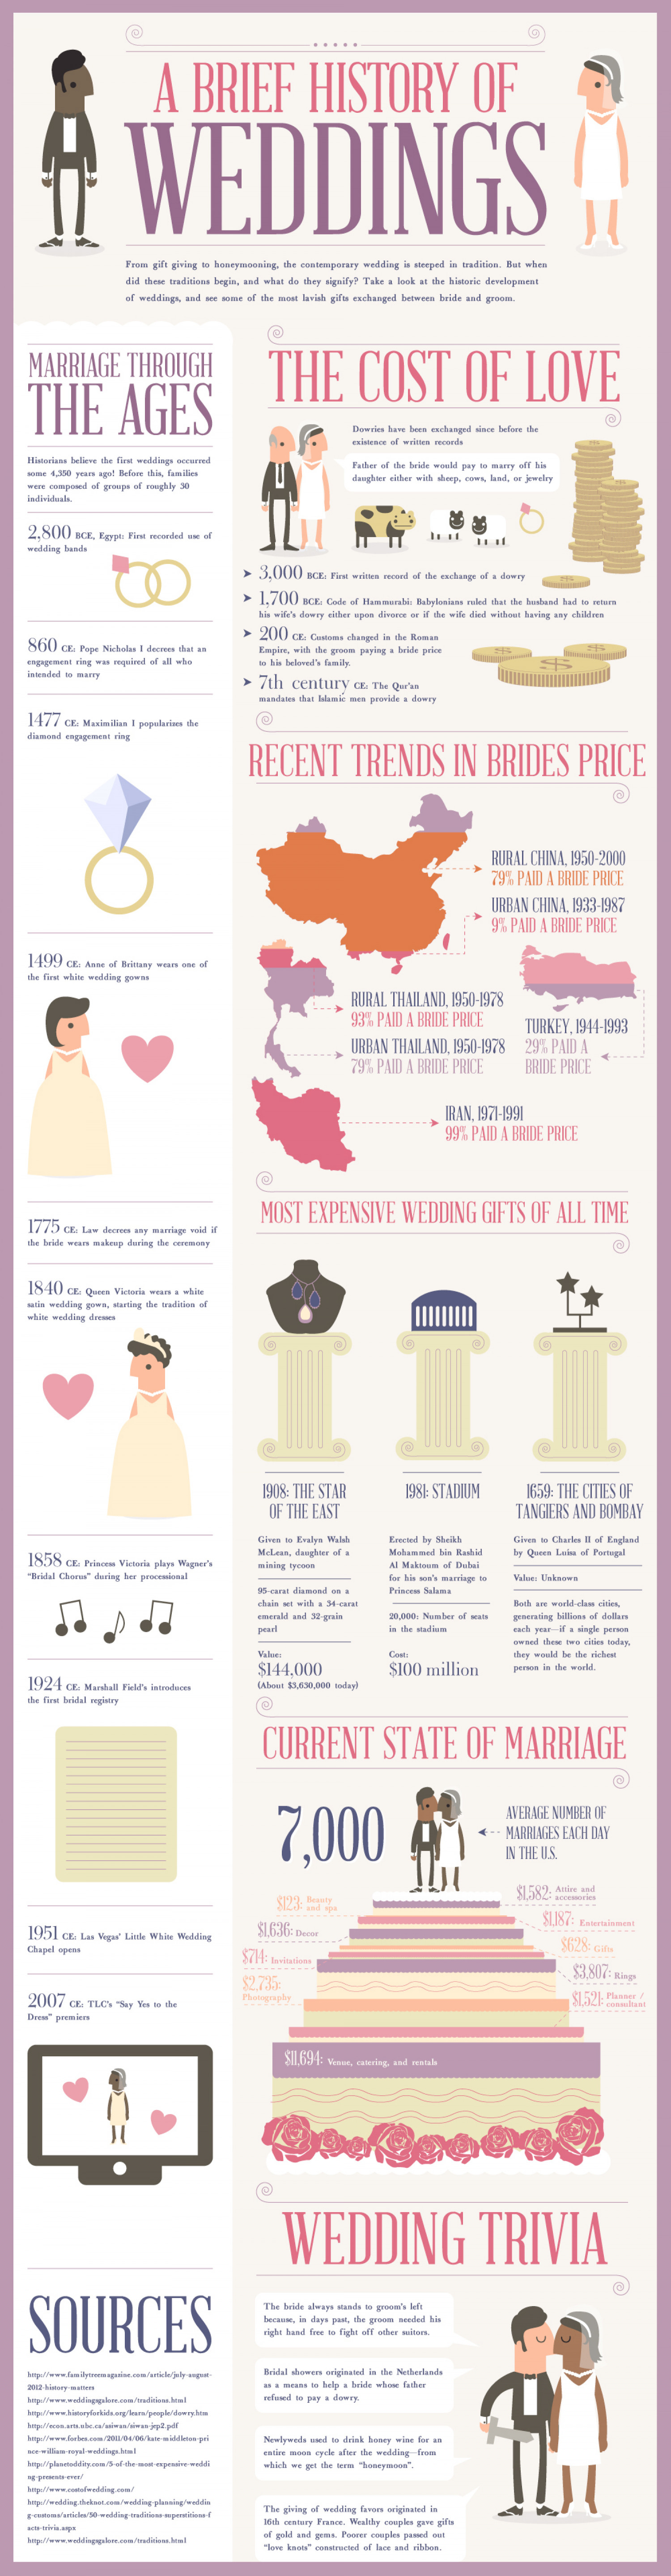 A Brief History Of Weddings Infographic